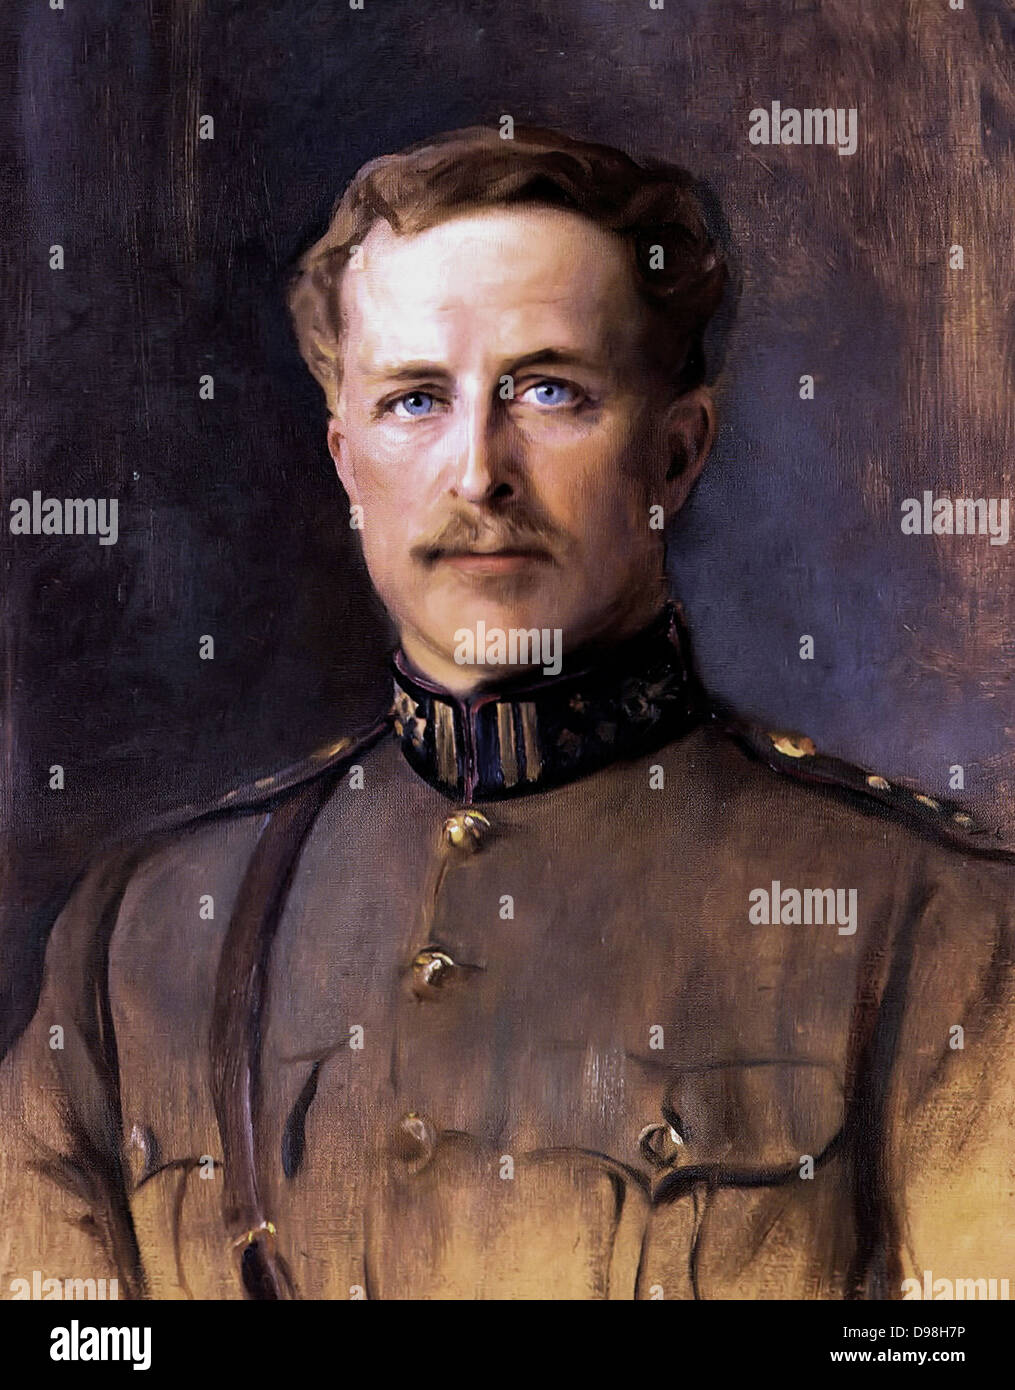 Albert I (8 April 1875 – 17 February 1934) reigned as King of the Belgians from 1909 until 1934. - Stock Image